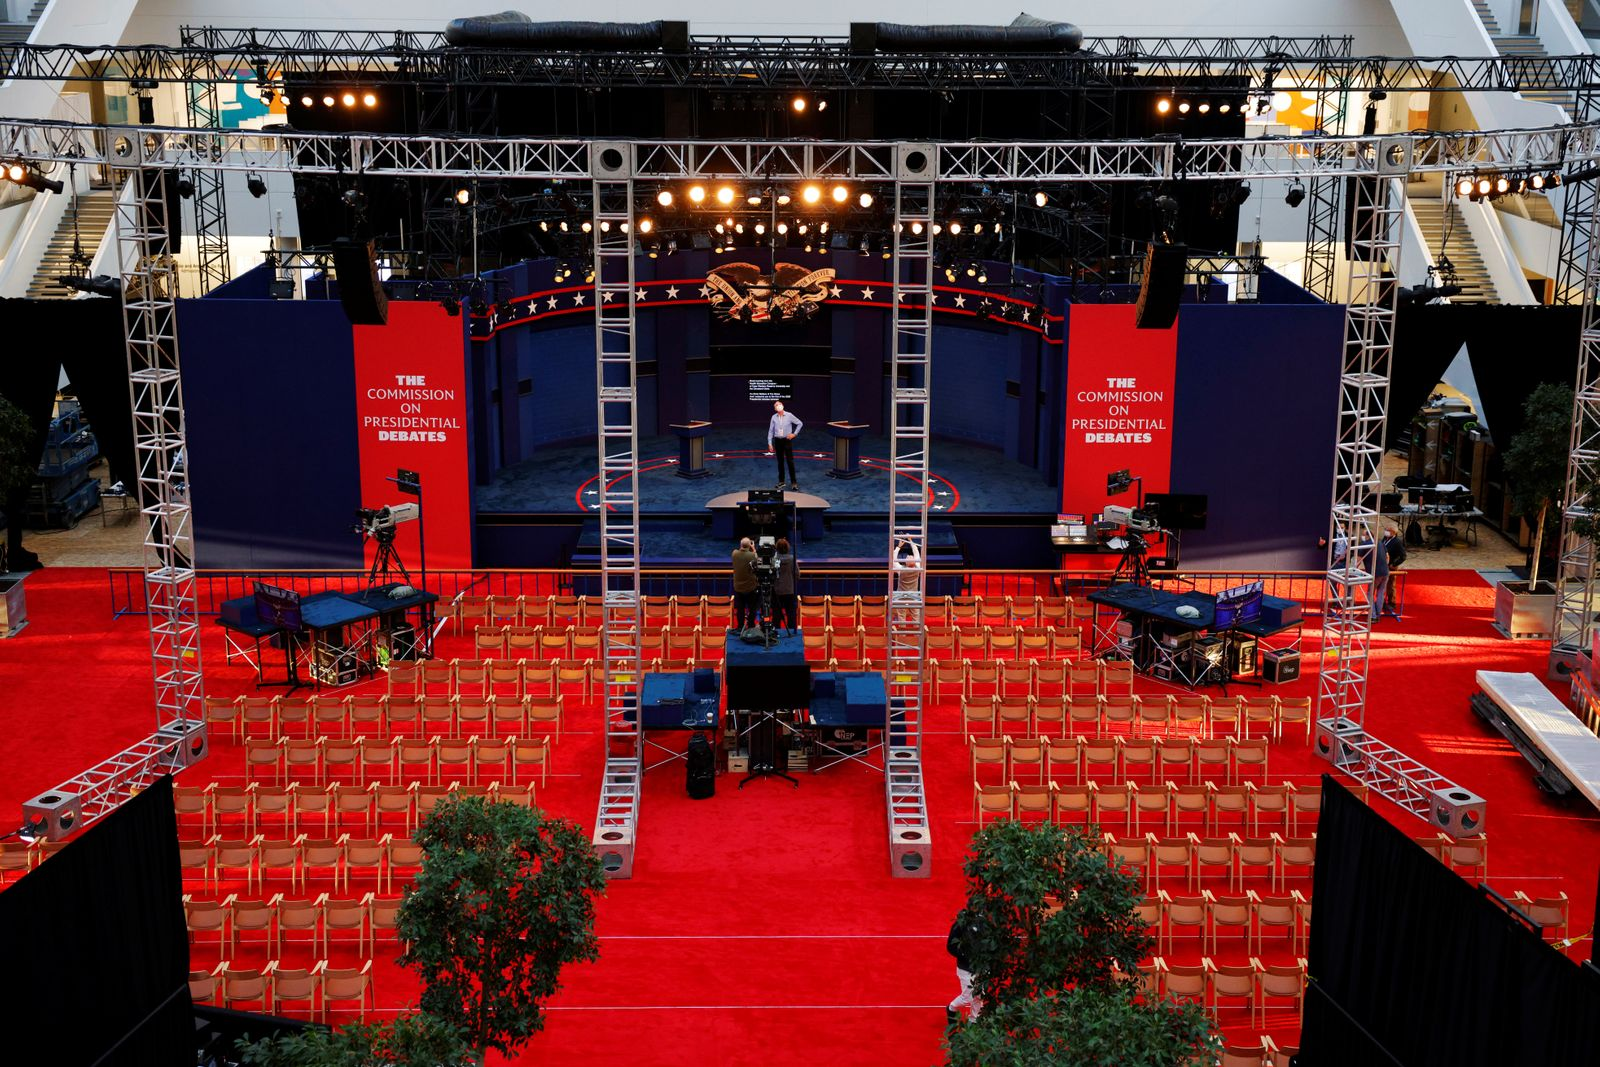 Preparations for the first presidential debate in Cleveland